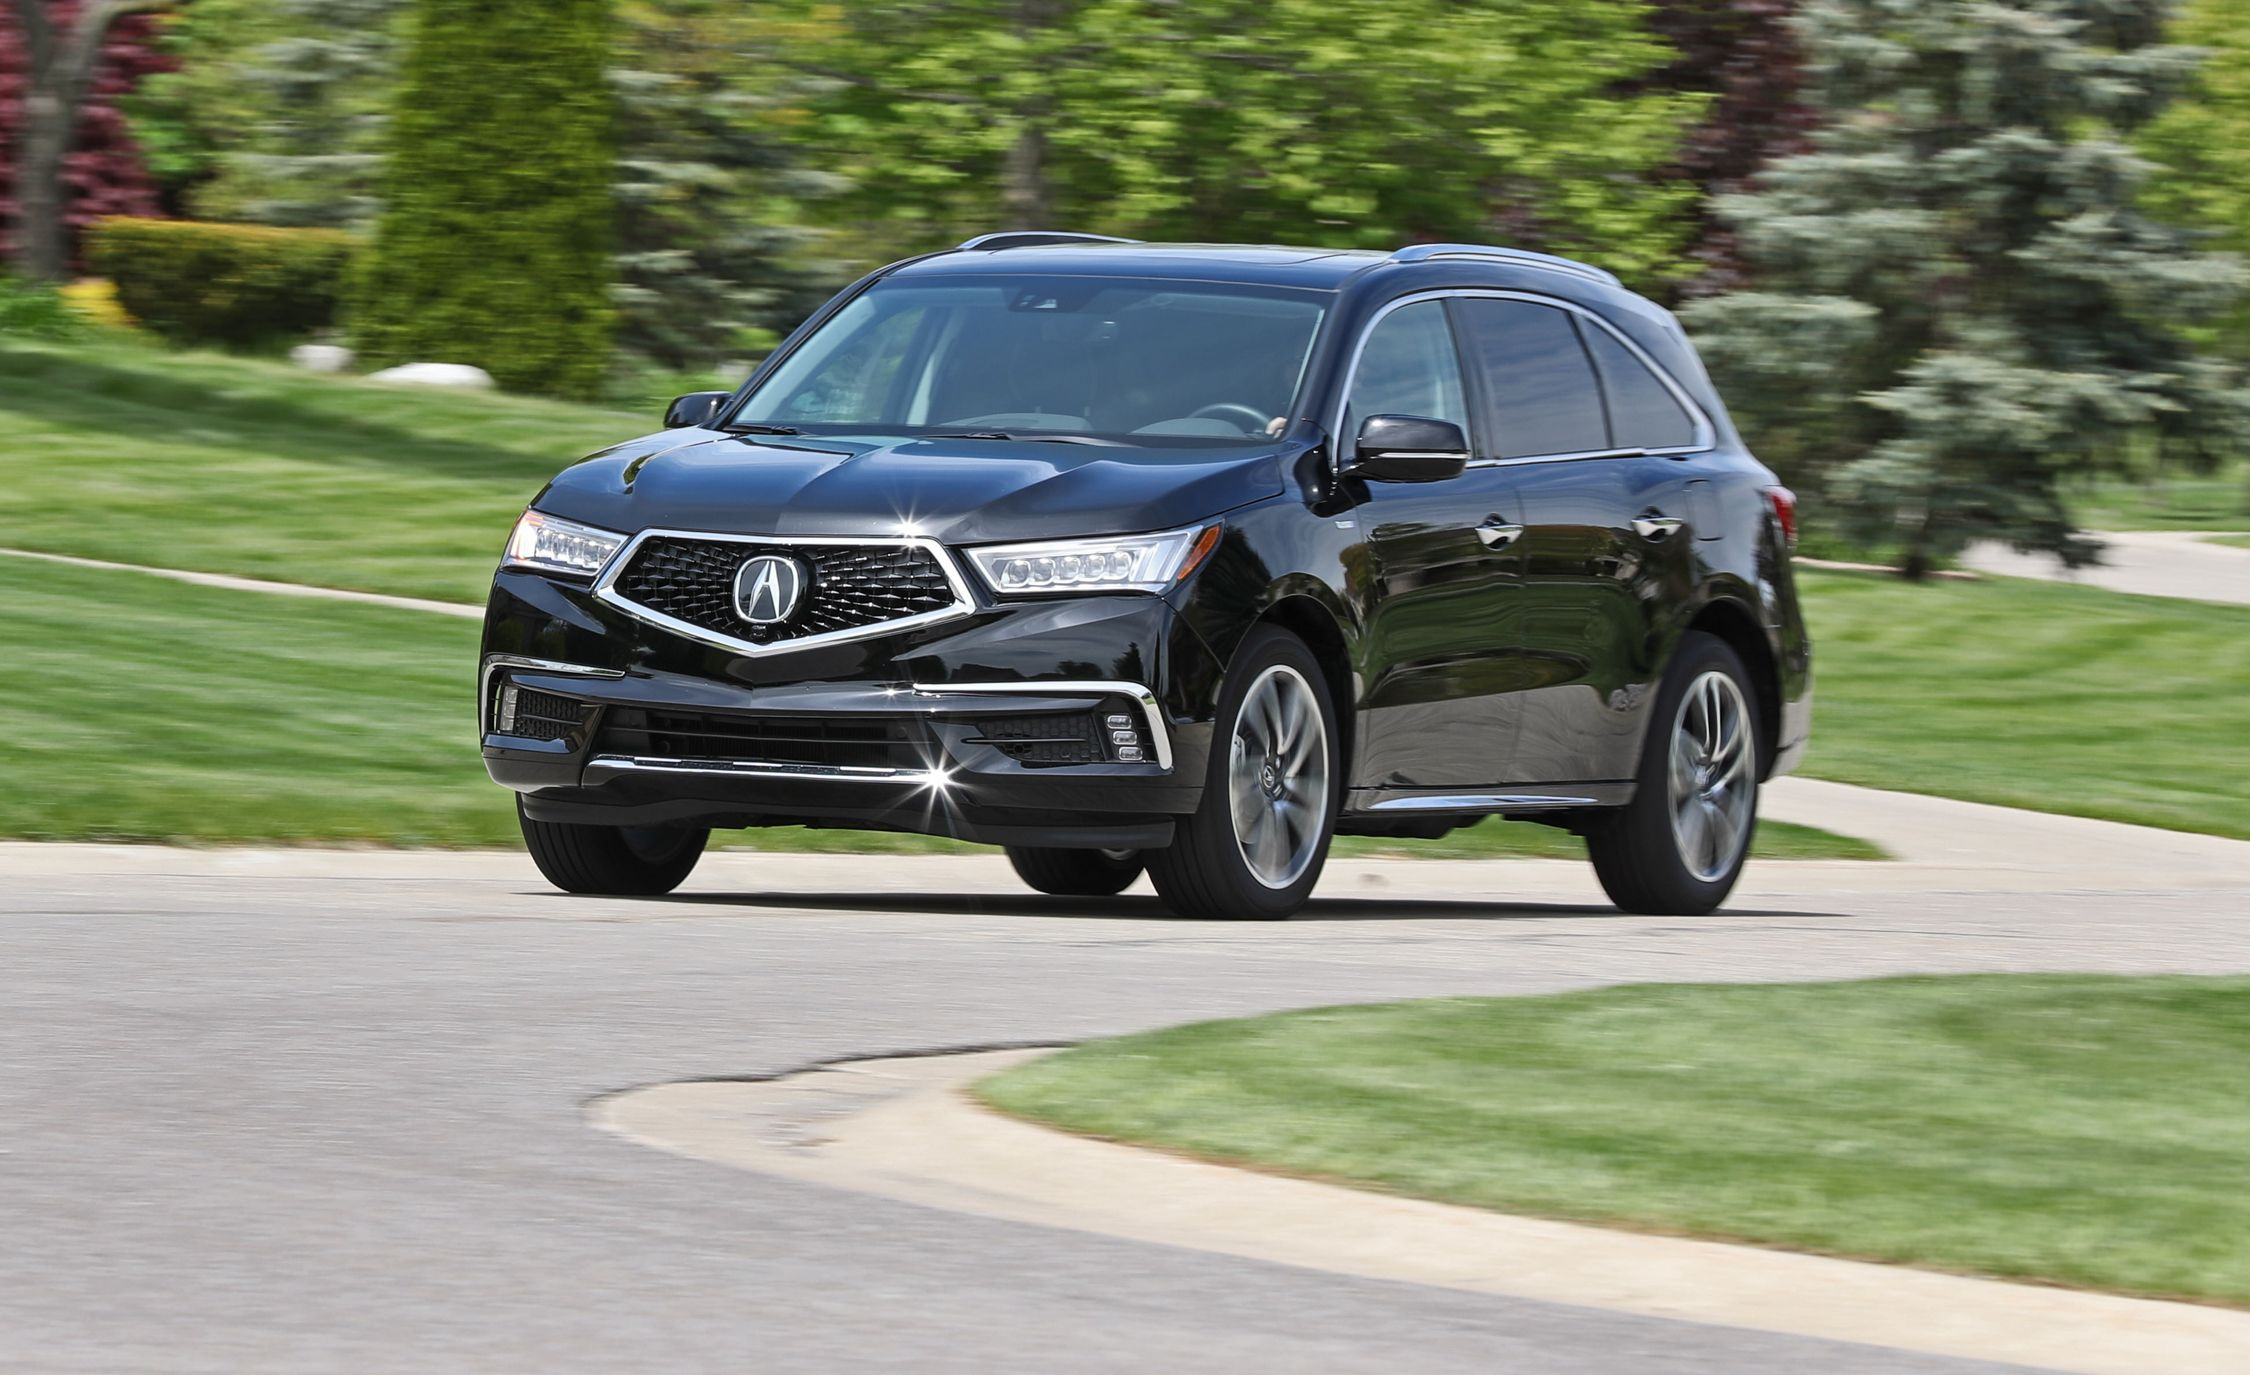 2019 Acura Mdx Reviews Price Photos And Specs Car 06 Volvo Xc90 Wiring Diagram Driver